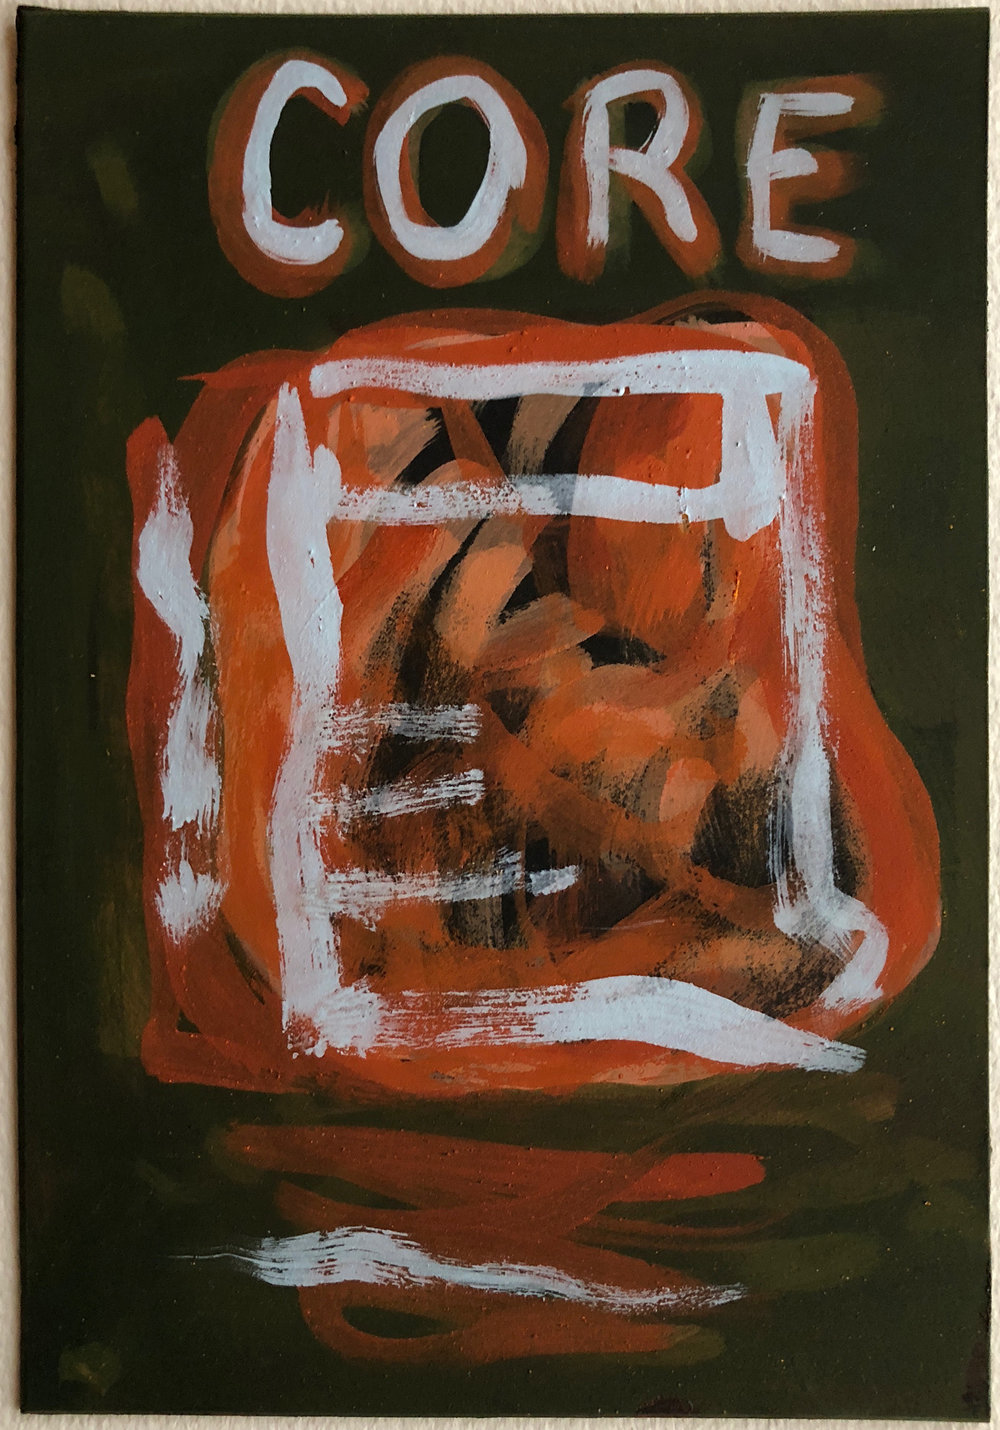 "Core,   2017 Pigment and egg tempera on matboard, 10"" x 7.5"""